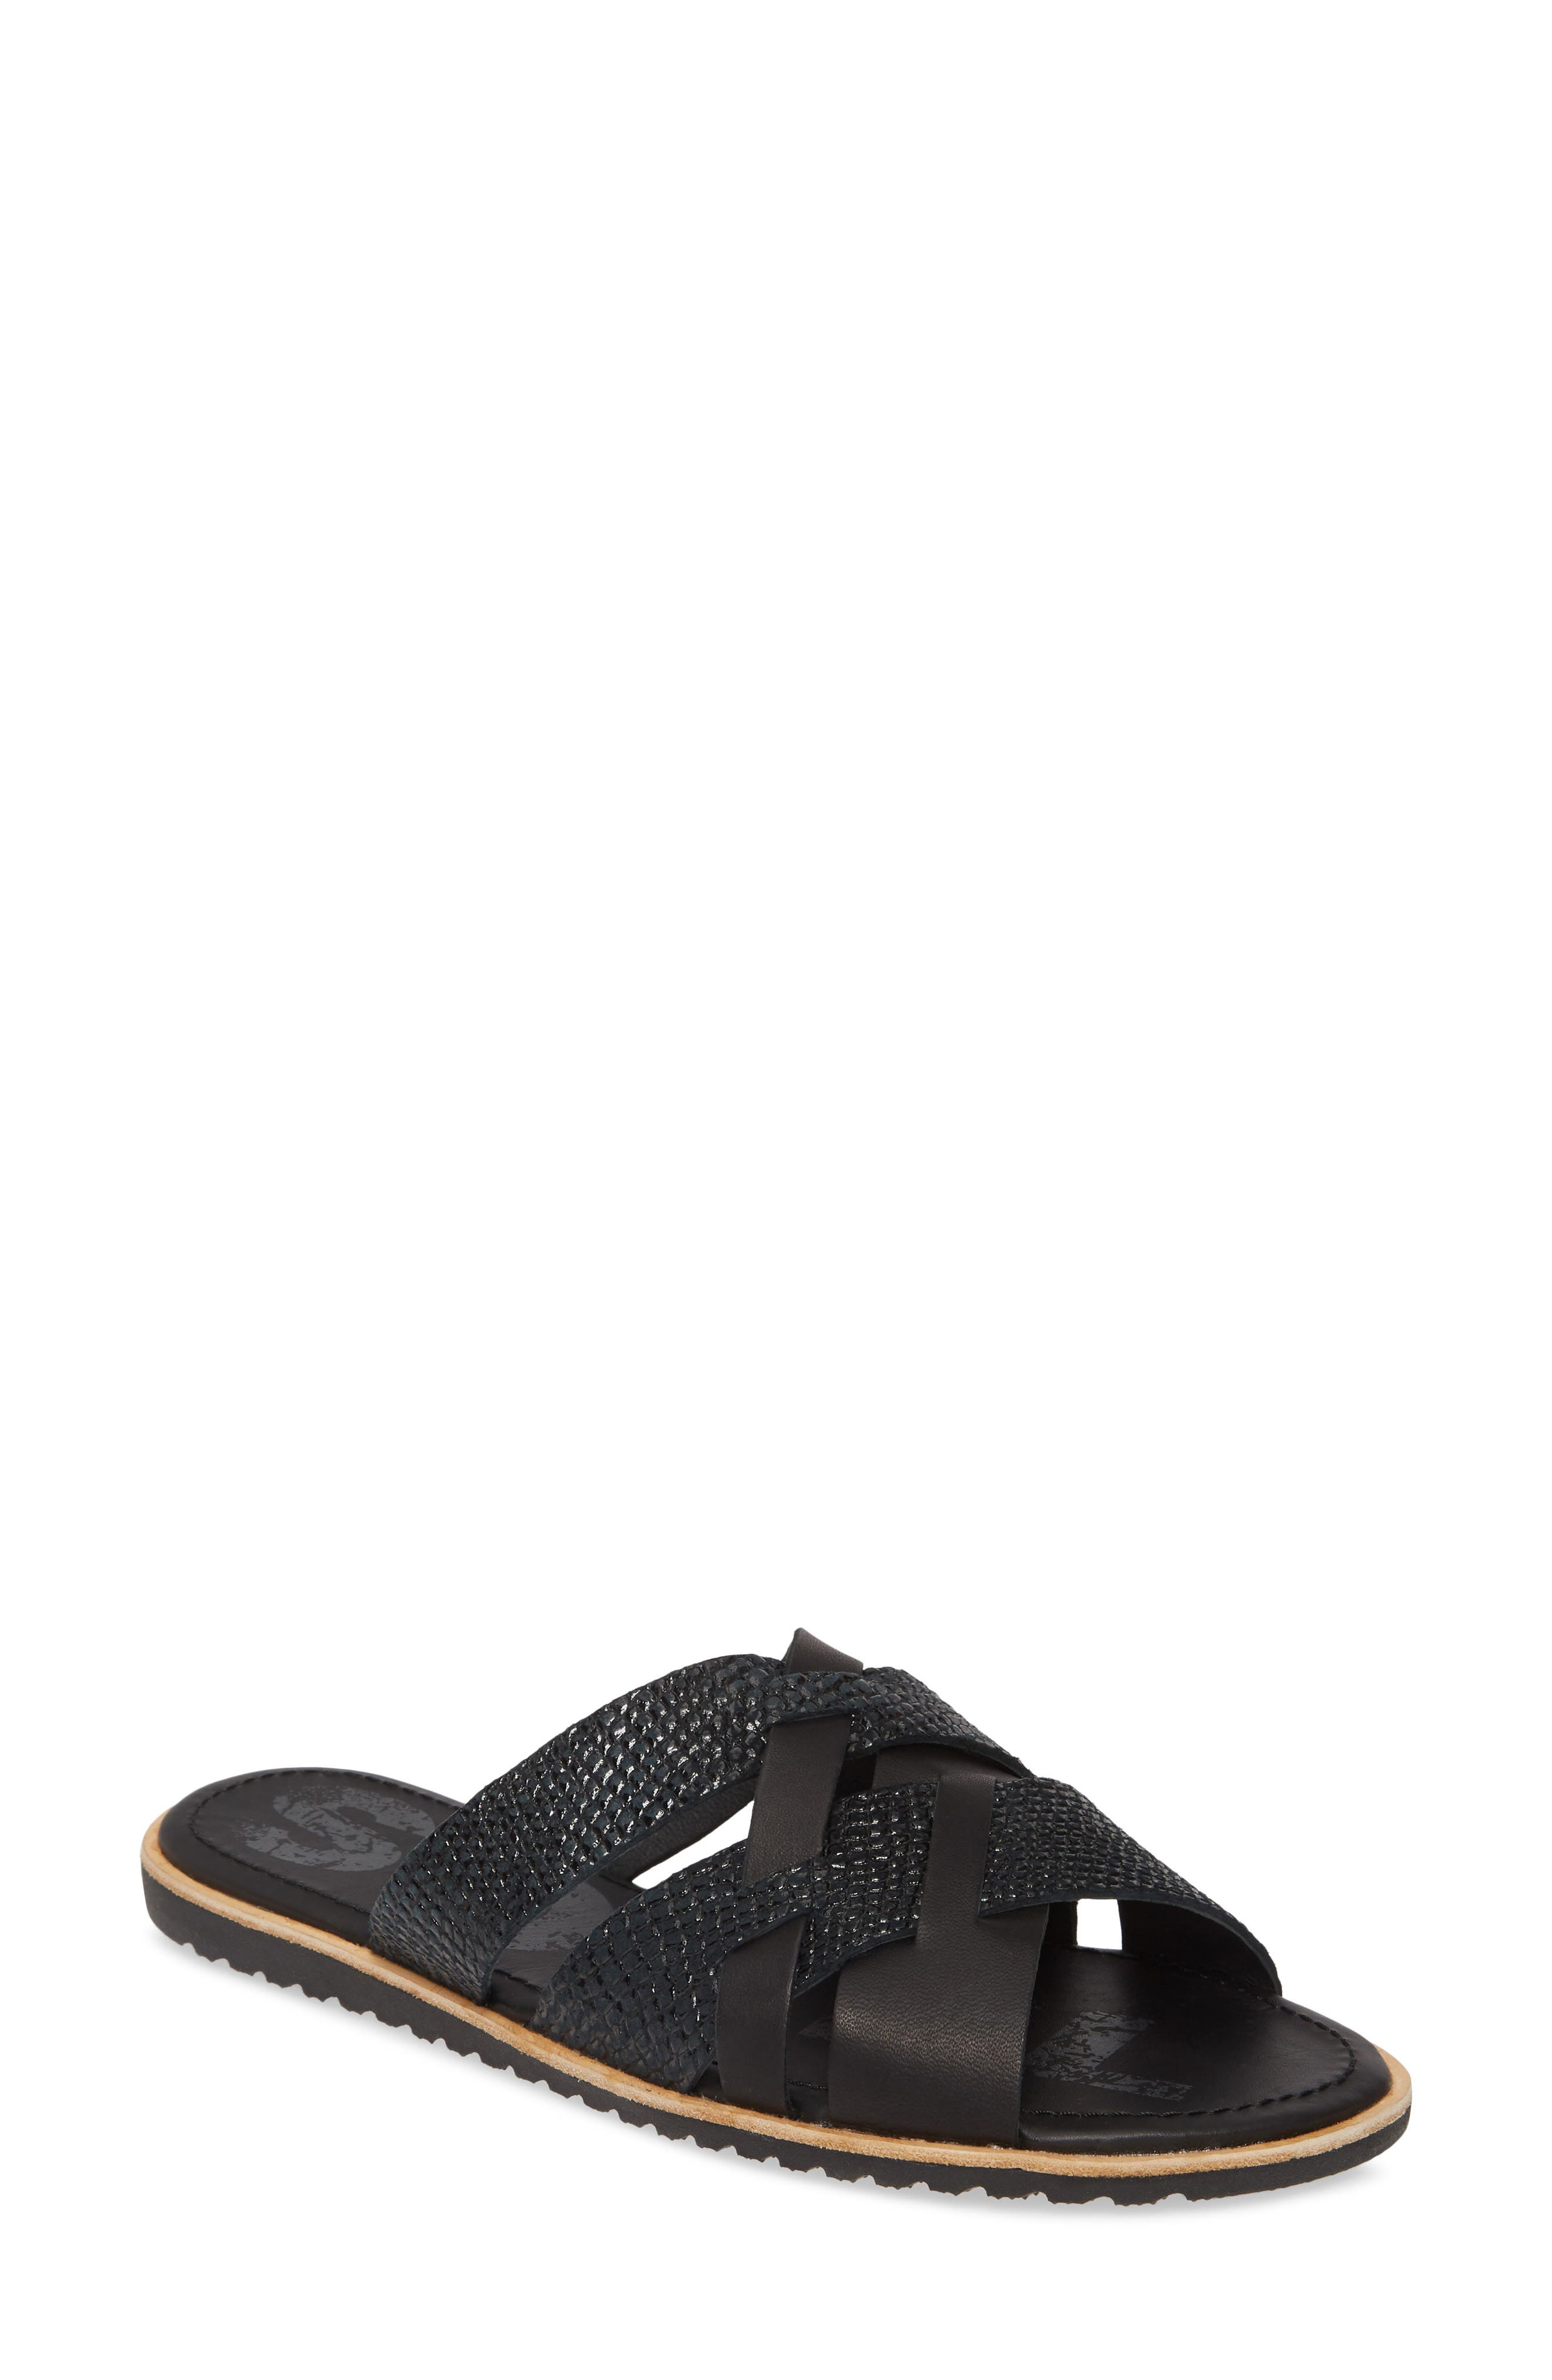 Sorel Ella Snakeskin Embossed Slide Sandal, Black